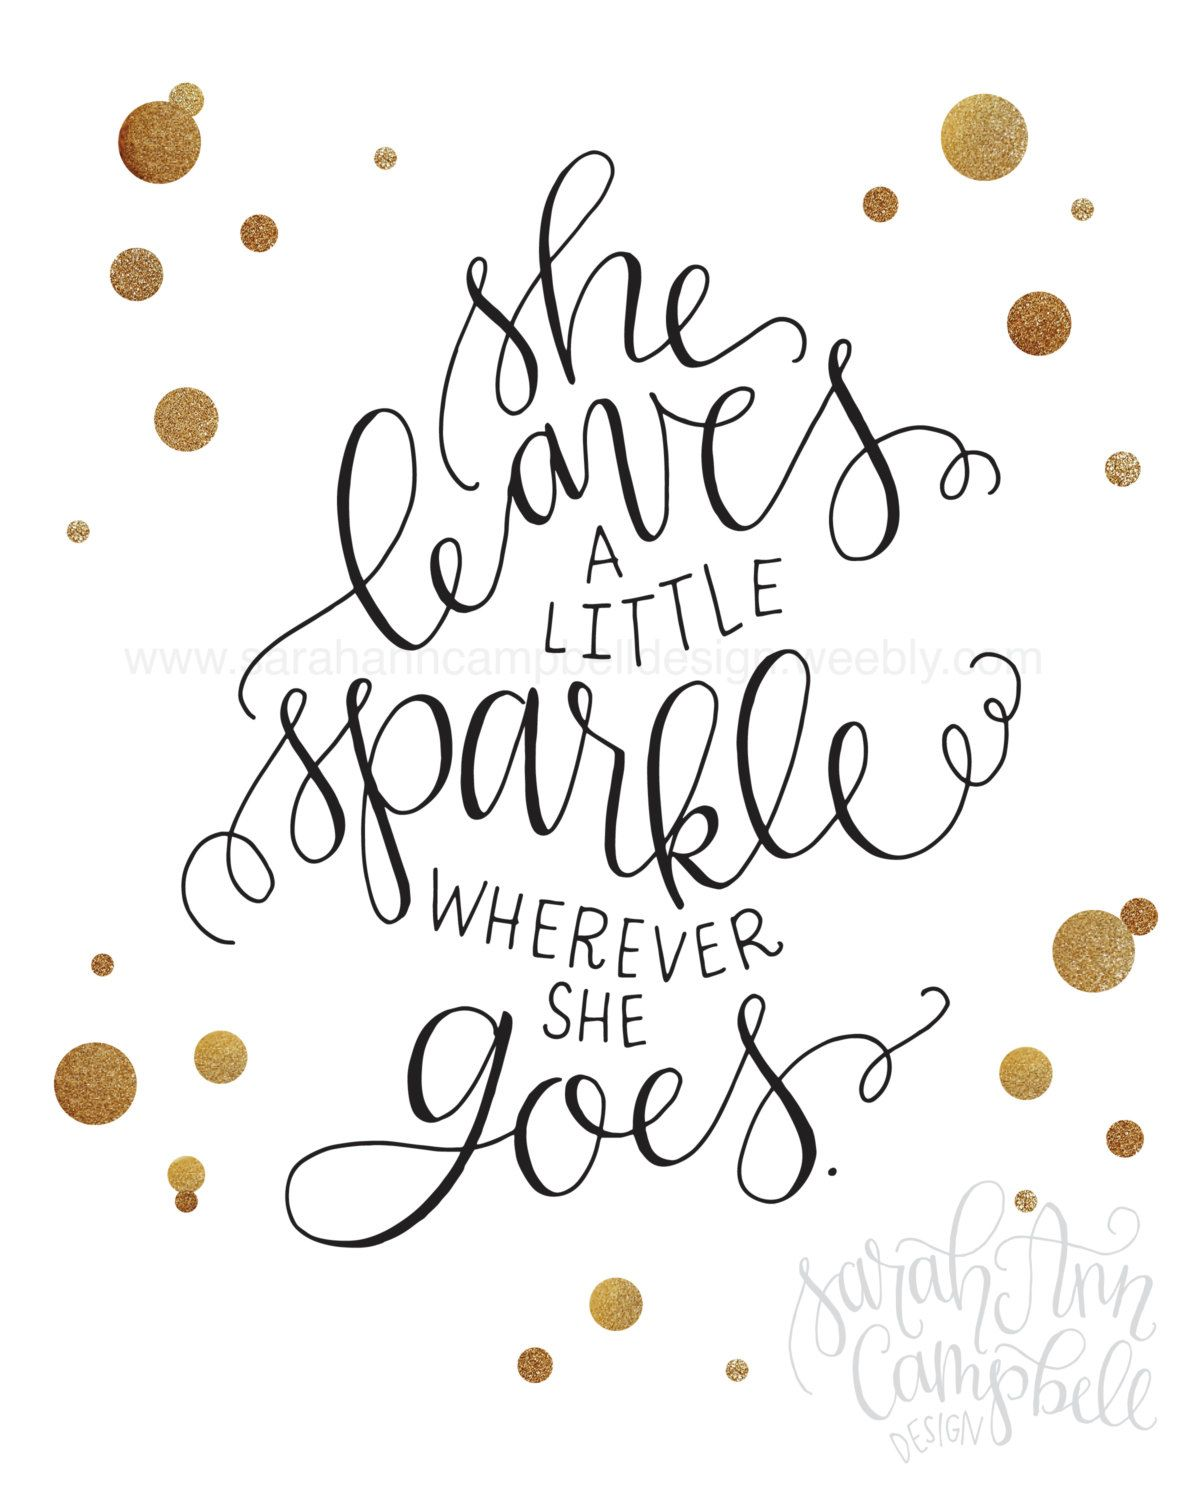 She Leaves A Little Sparkle Print She Leaves A Little Sparkle Wherever She Goes Kate Spade By Sarahacampbelldesi Cute Quotes Words Inspirational Quotes